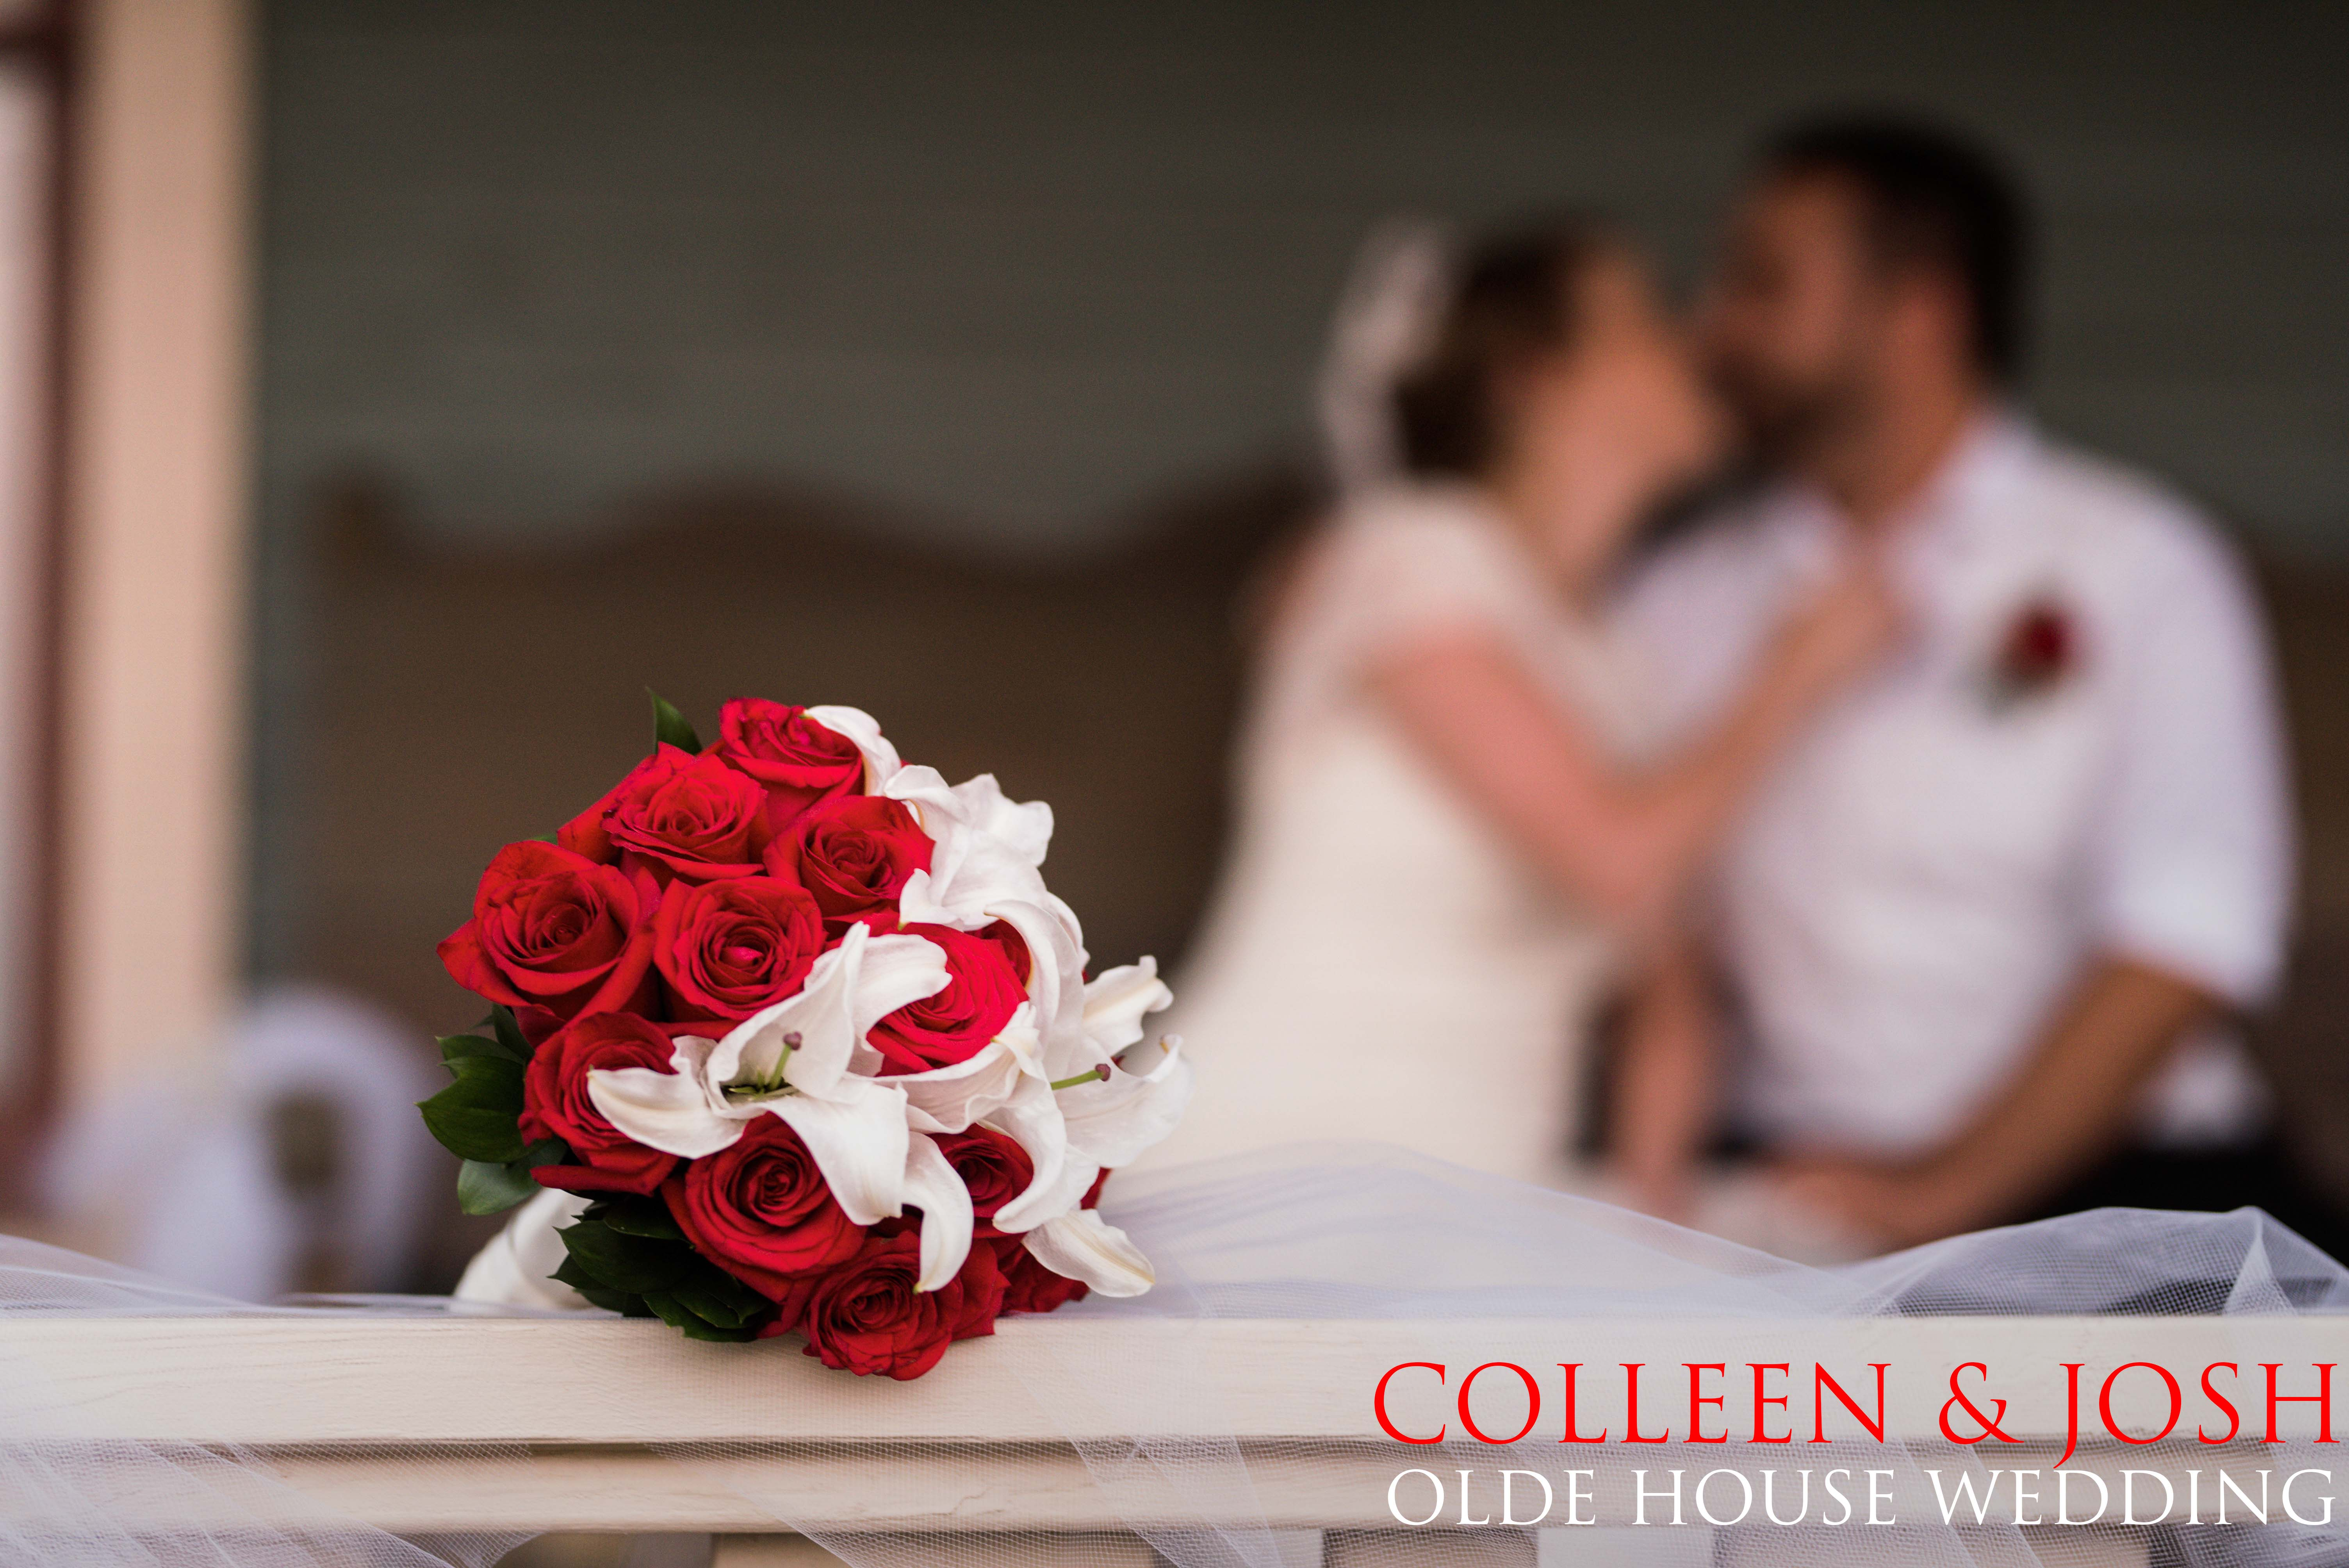 Olde House Wedding - Dallas Wedding